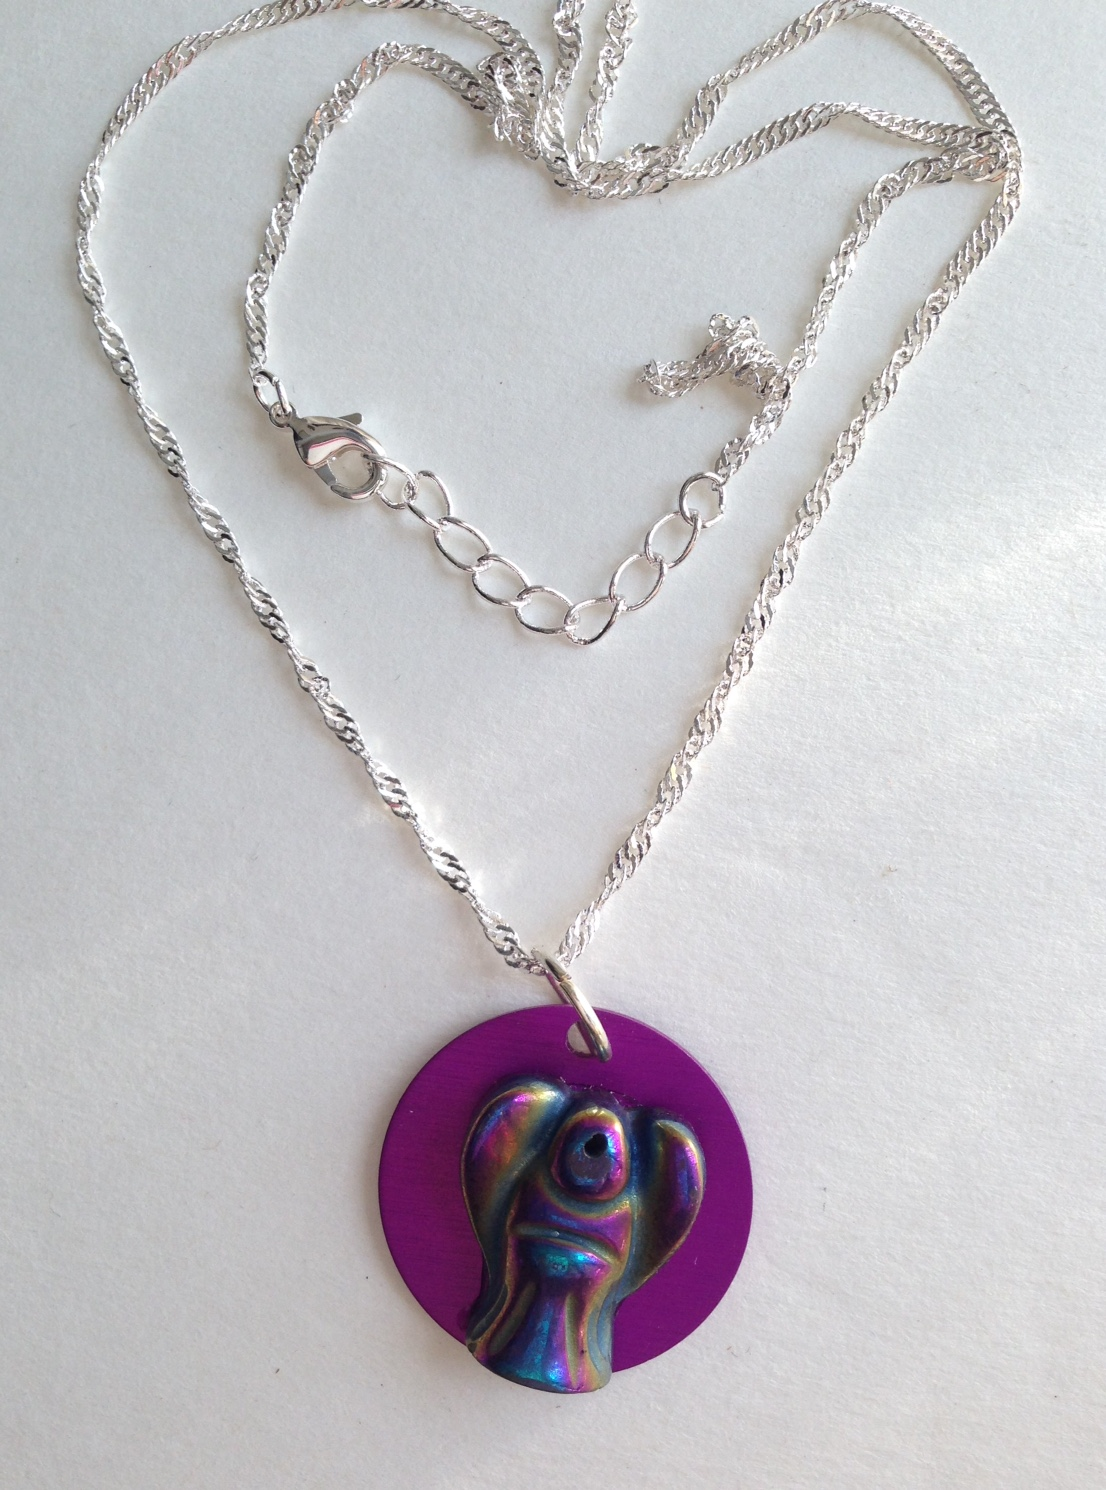 SALE! Rainbow Pyrite Angel Figure Necklace w/Purple Disk